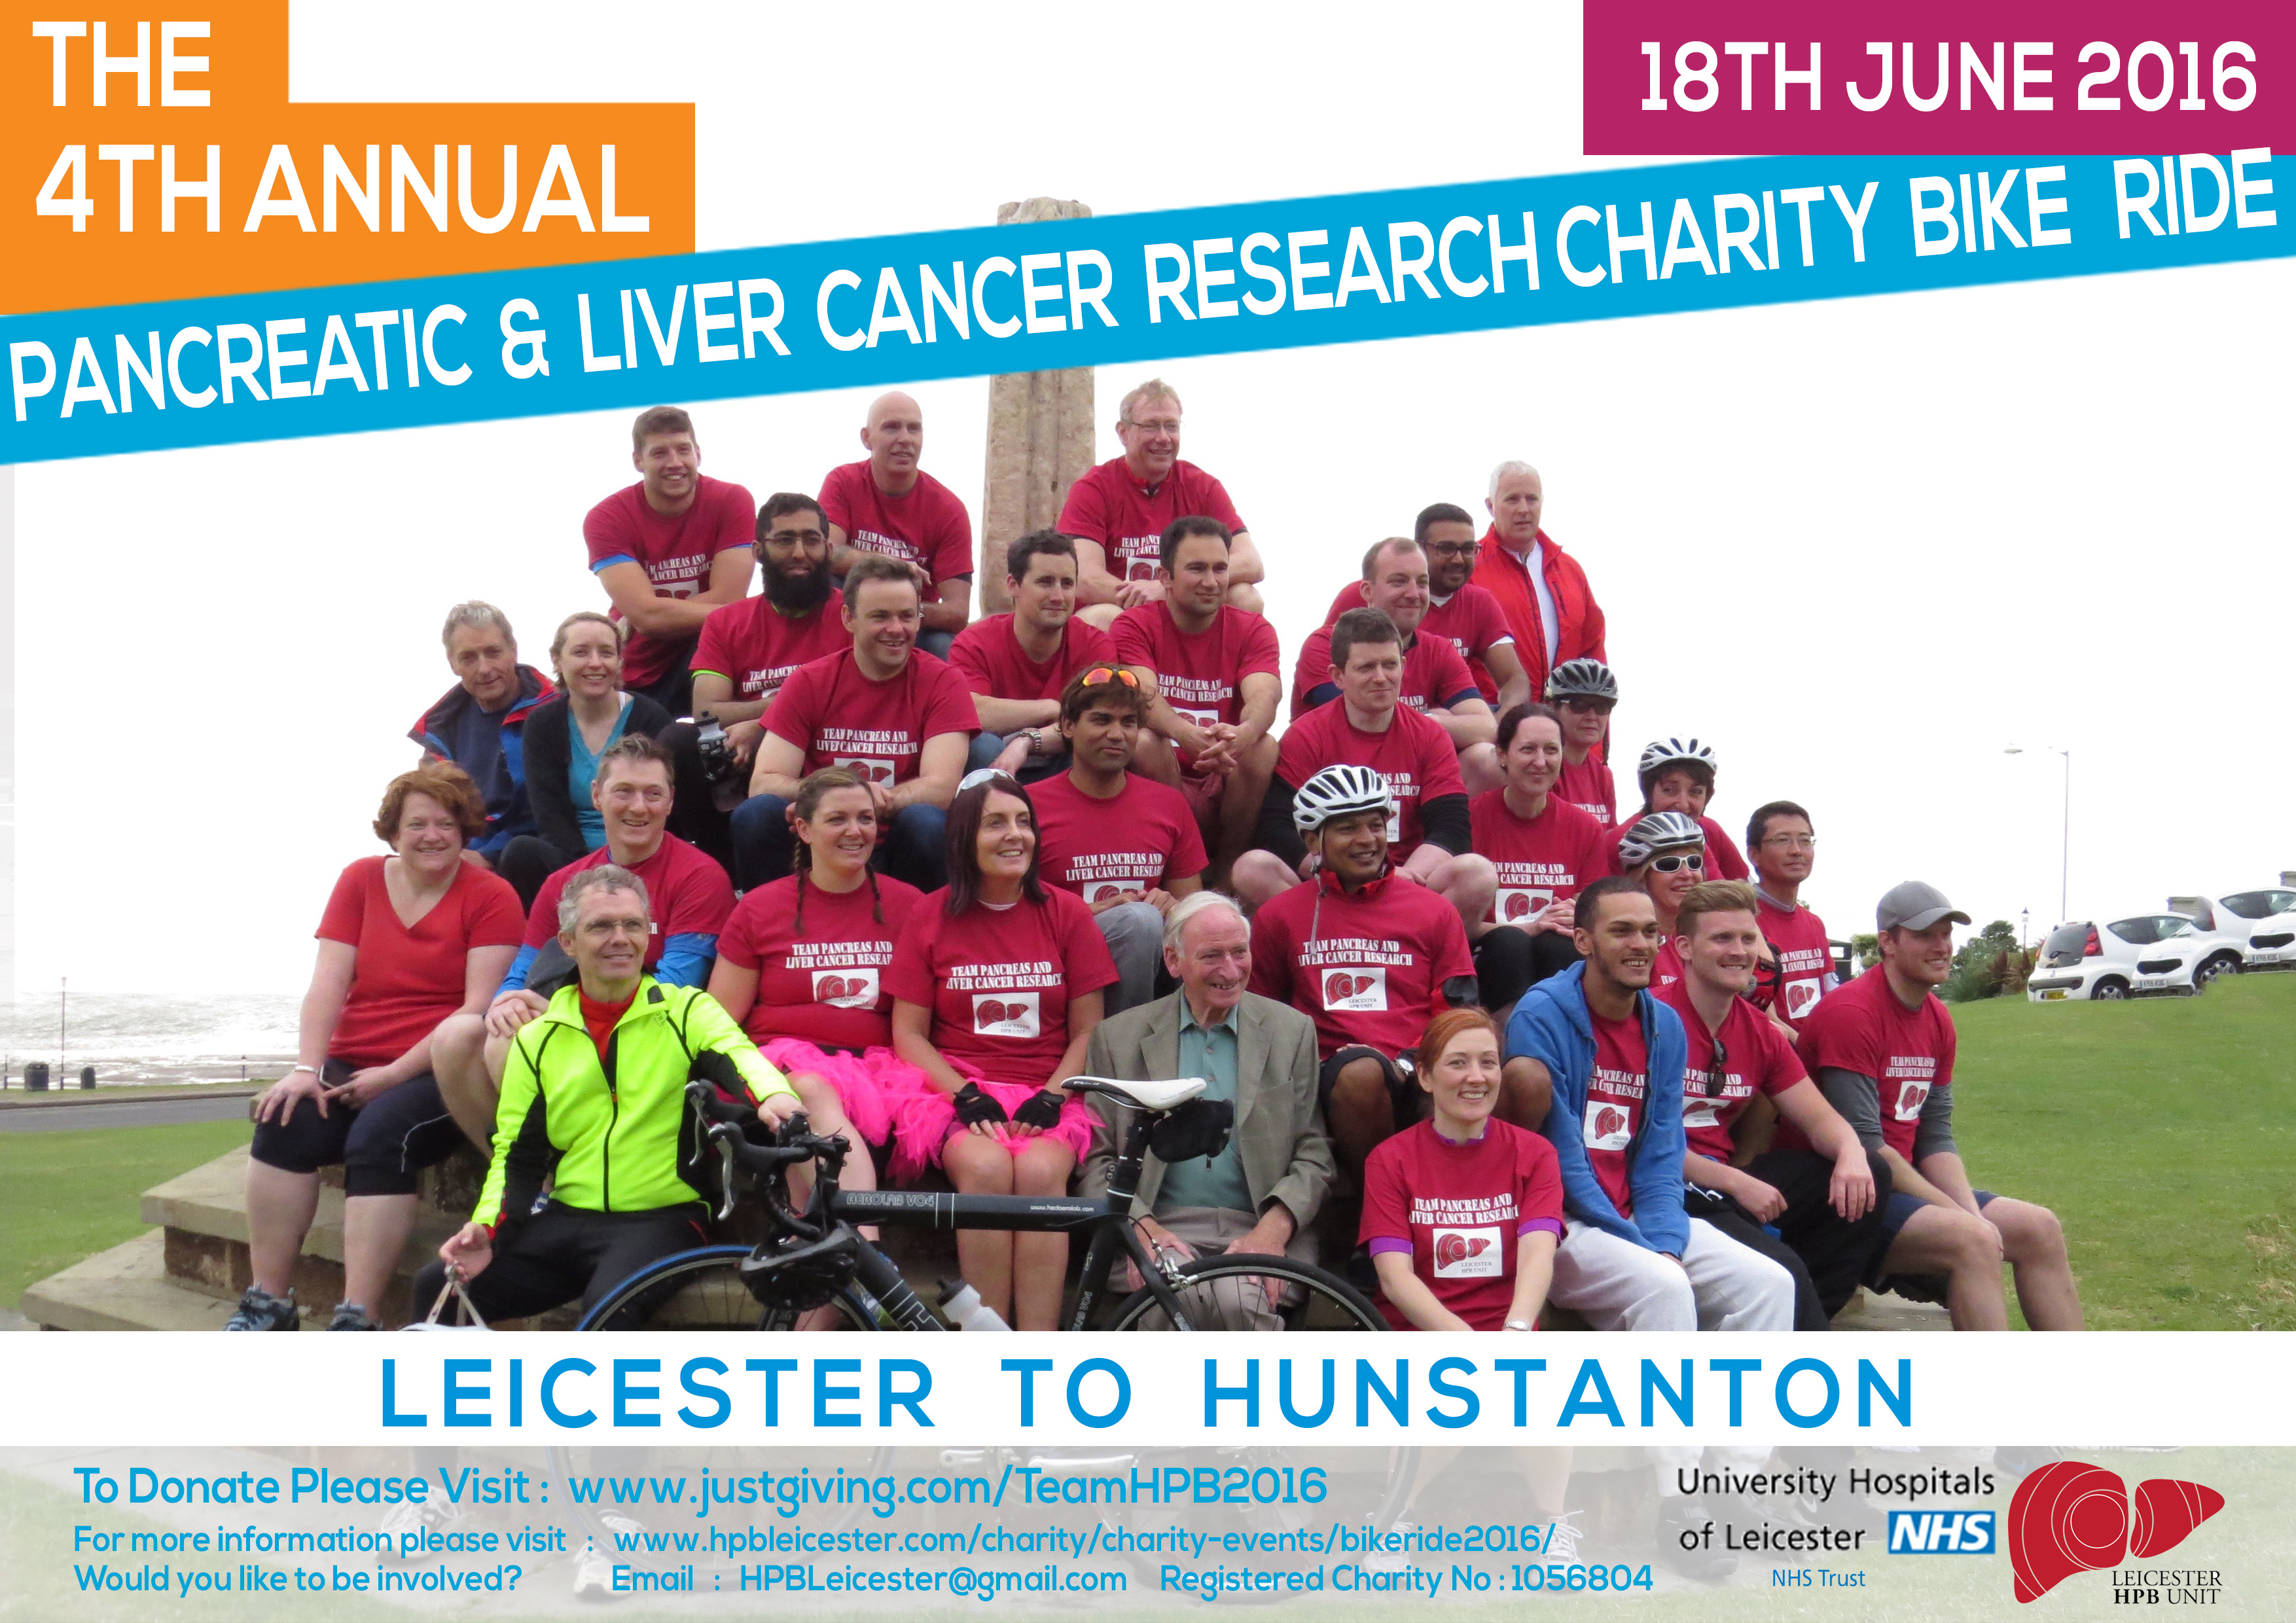 Leicester to Hunstanton